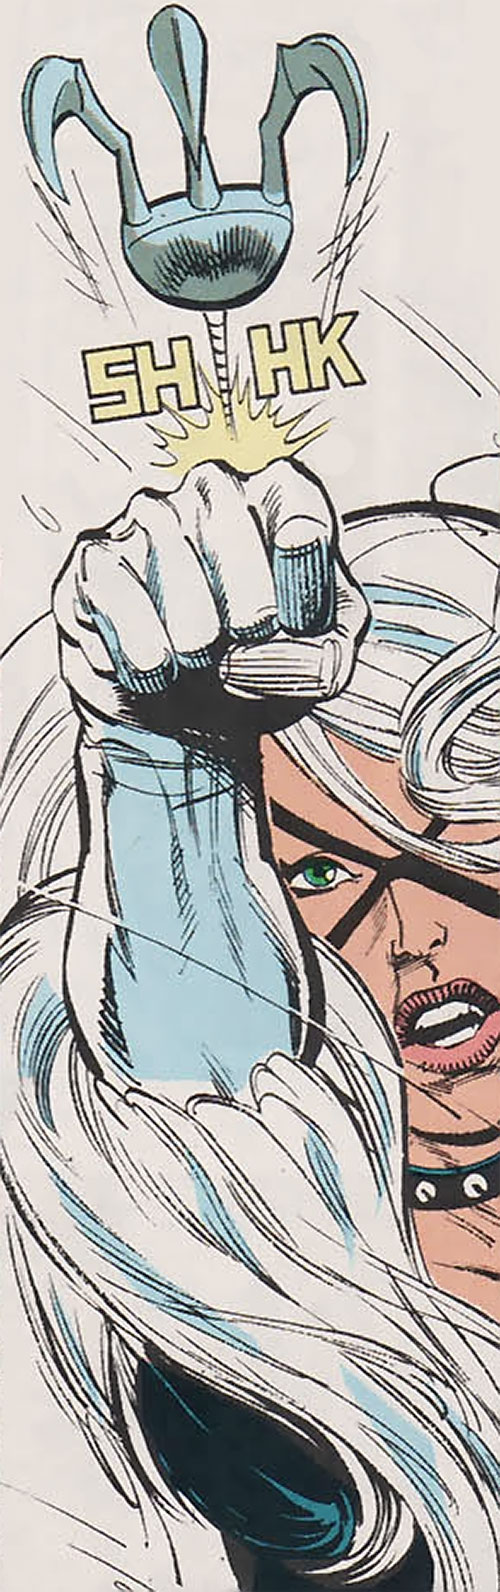 Black Cat (Spider-Man character) (Marvel Comics) shoots a clawed grappling hook